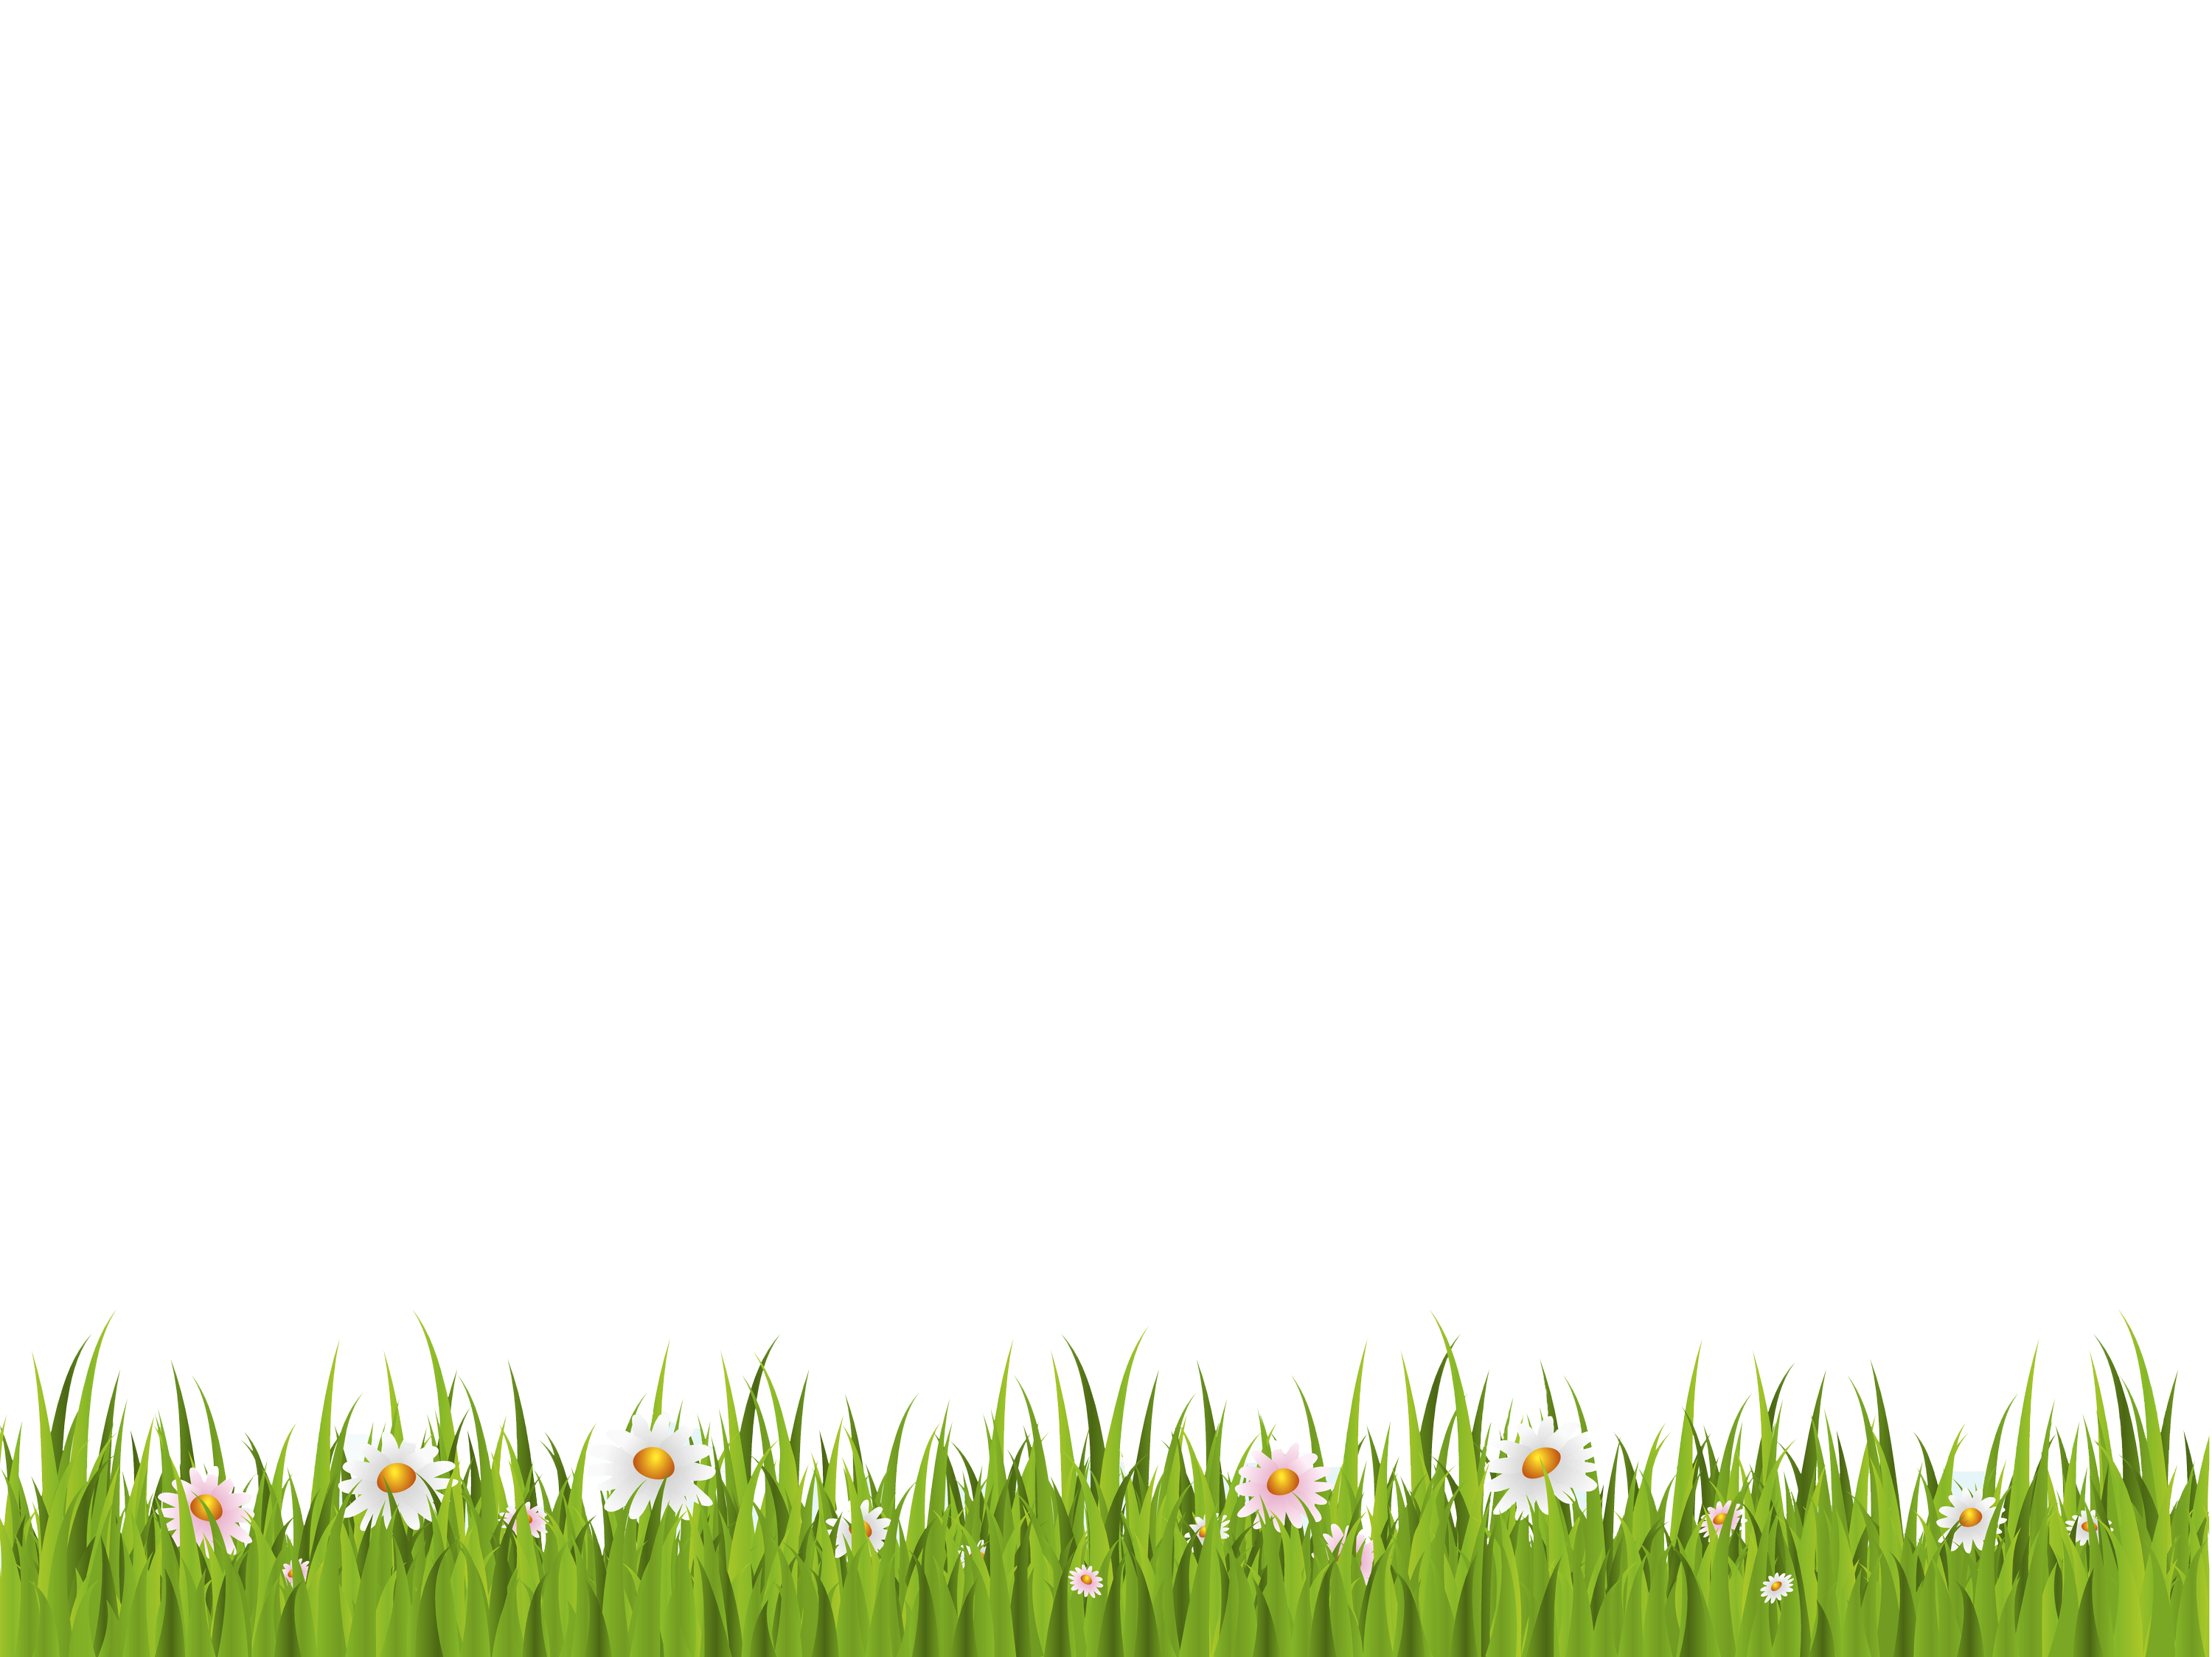 Grass Background Png (+).